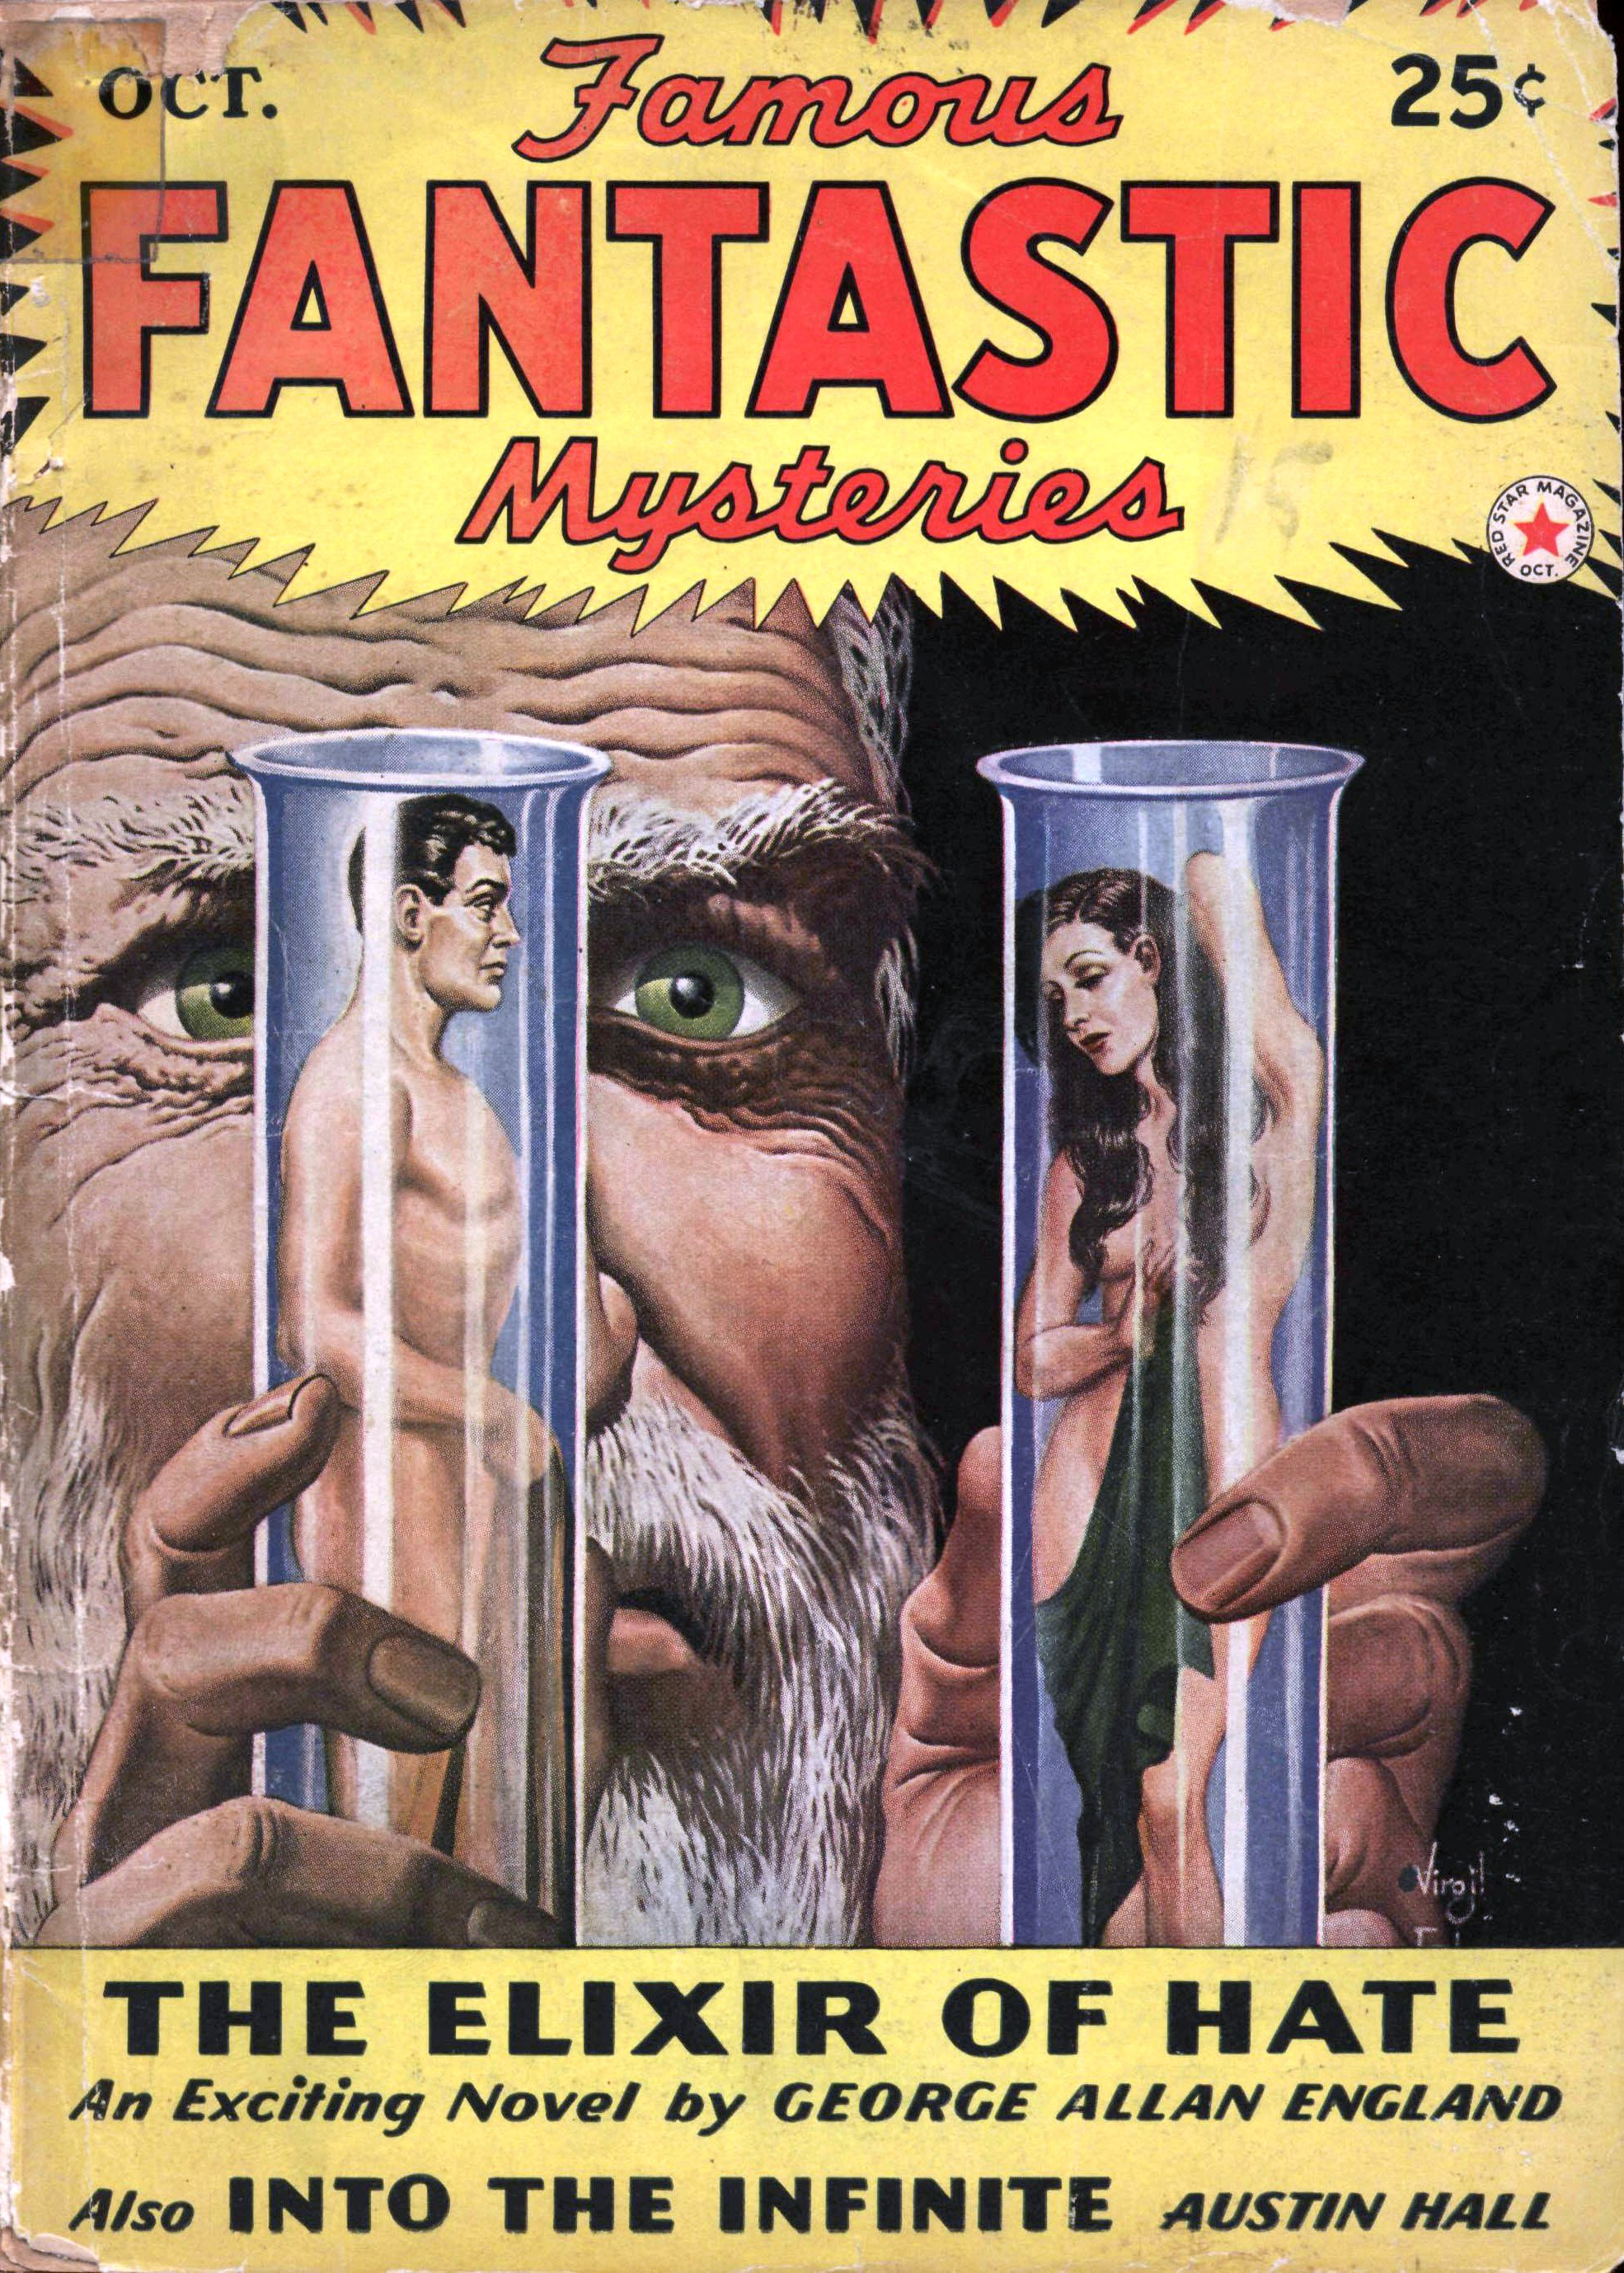 Famous Fantastic Mysteries, October 1942